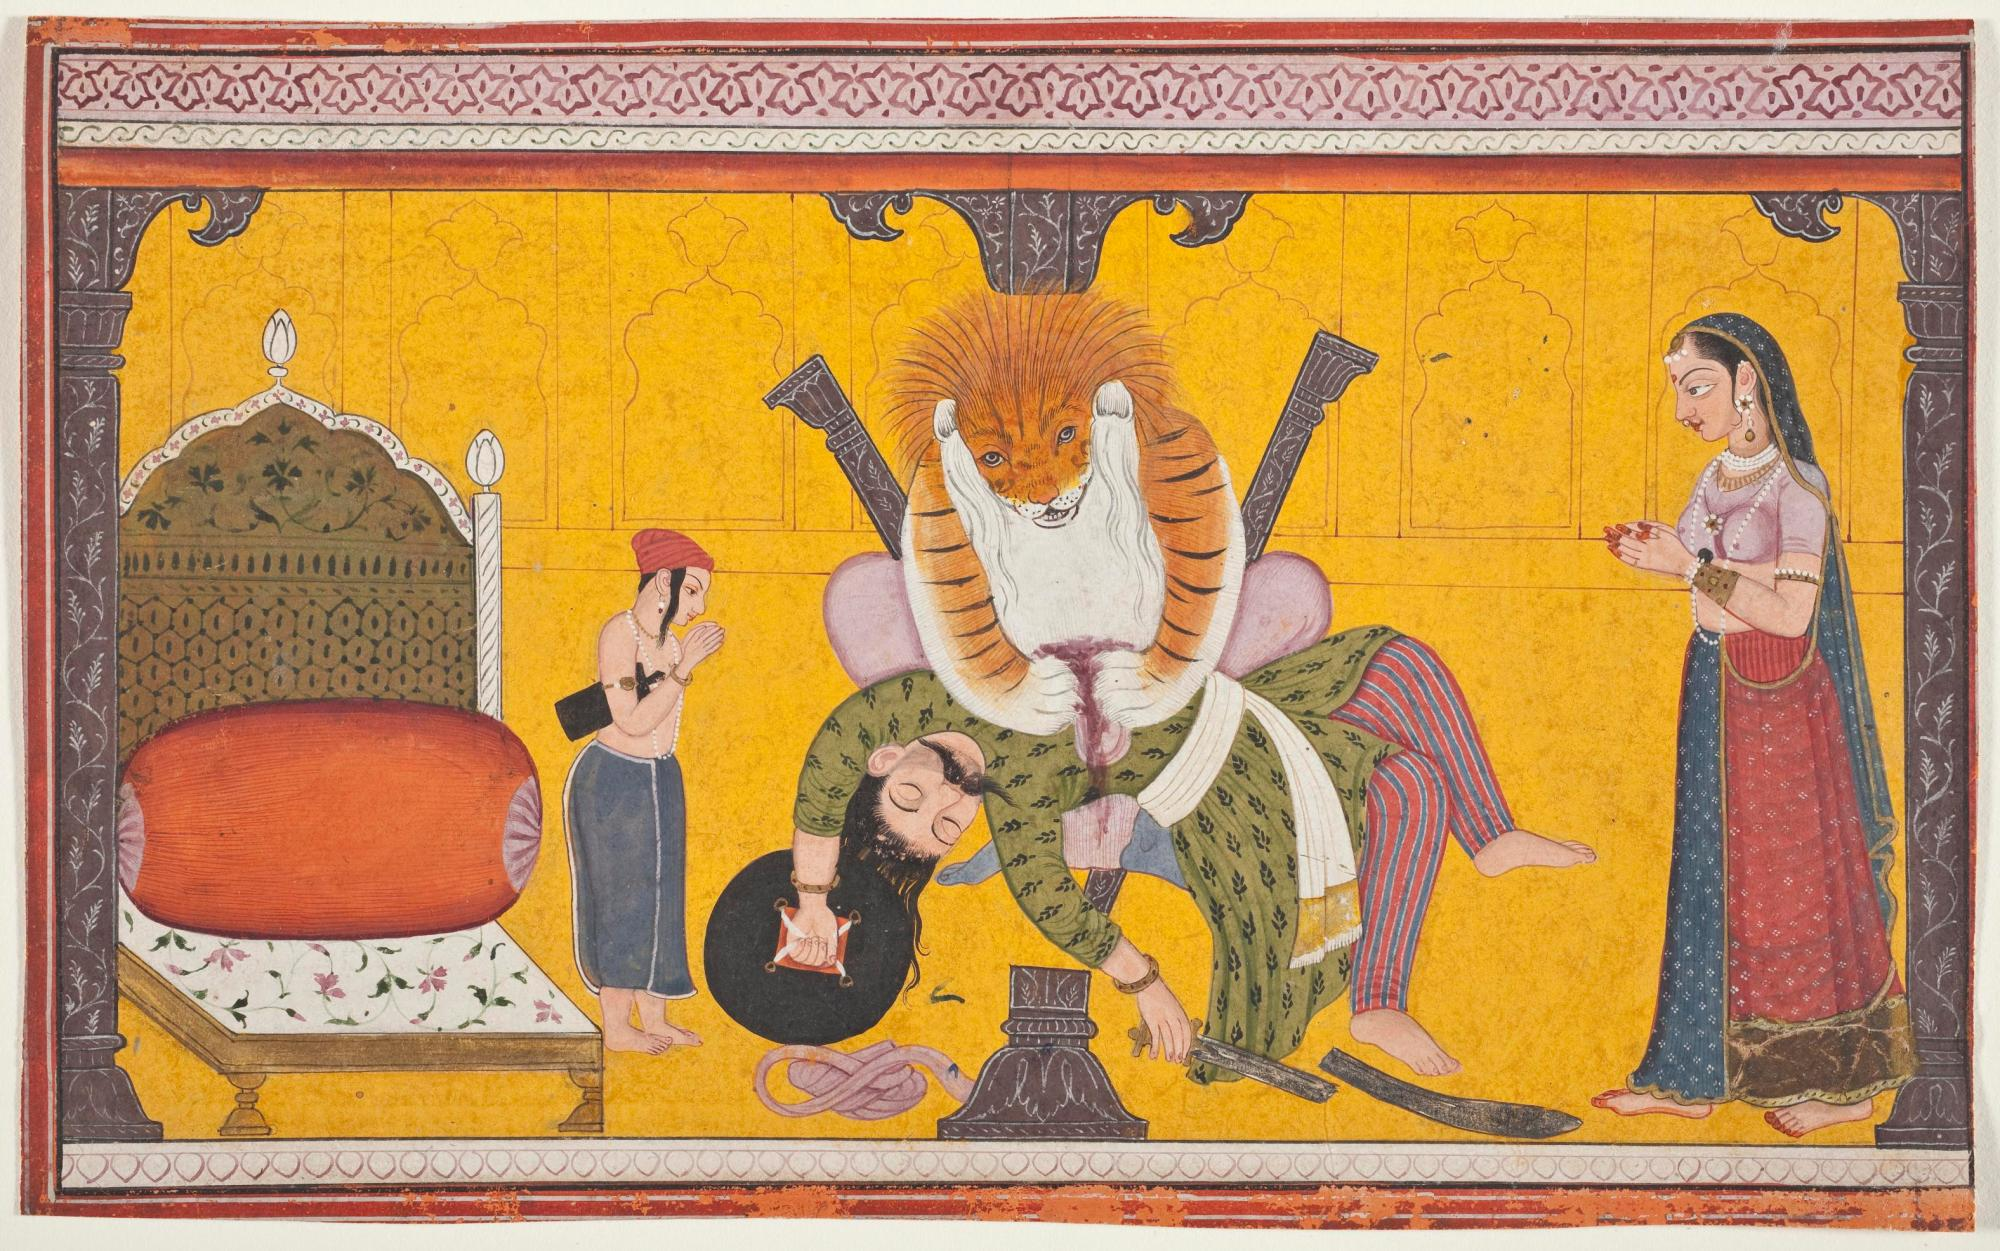 Narasimha Disemboweling Hiranyakashipu, Folio from a Bhagavata Purana (Ancient Stories of the Lord), c. 1760-1770. Opaque watercolour and gold on paper, 12.1 x 23.5 cm. Los Angeles County Museum of Art, Los Angeles.